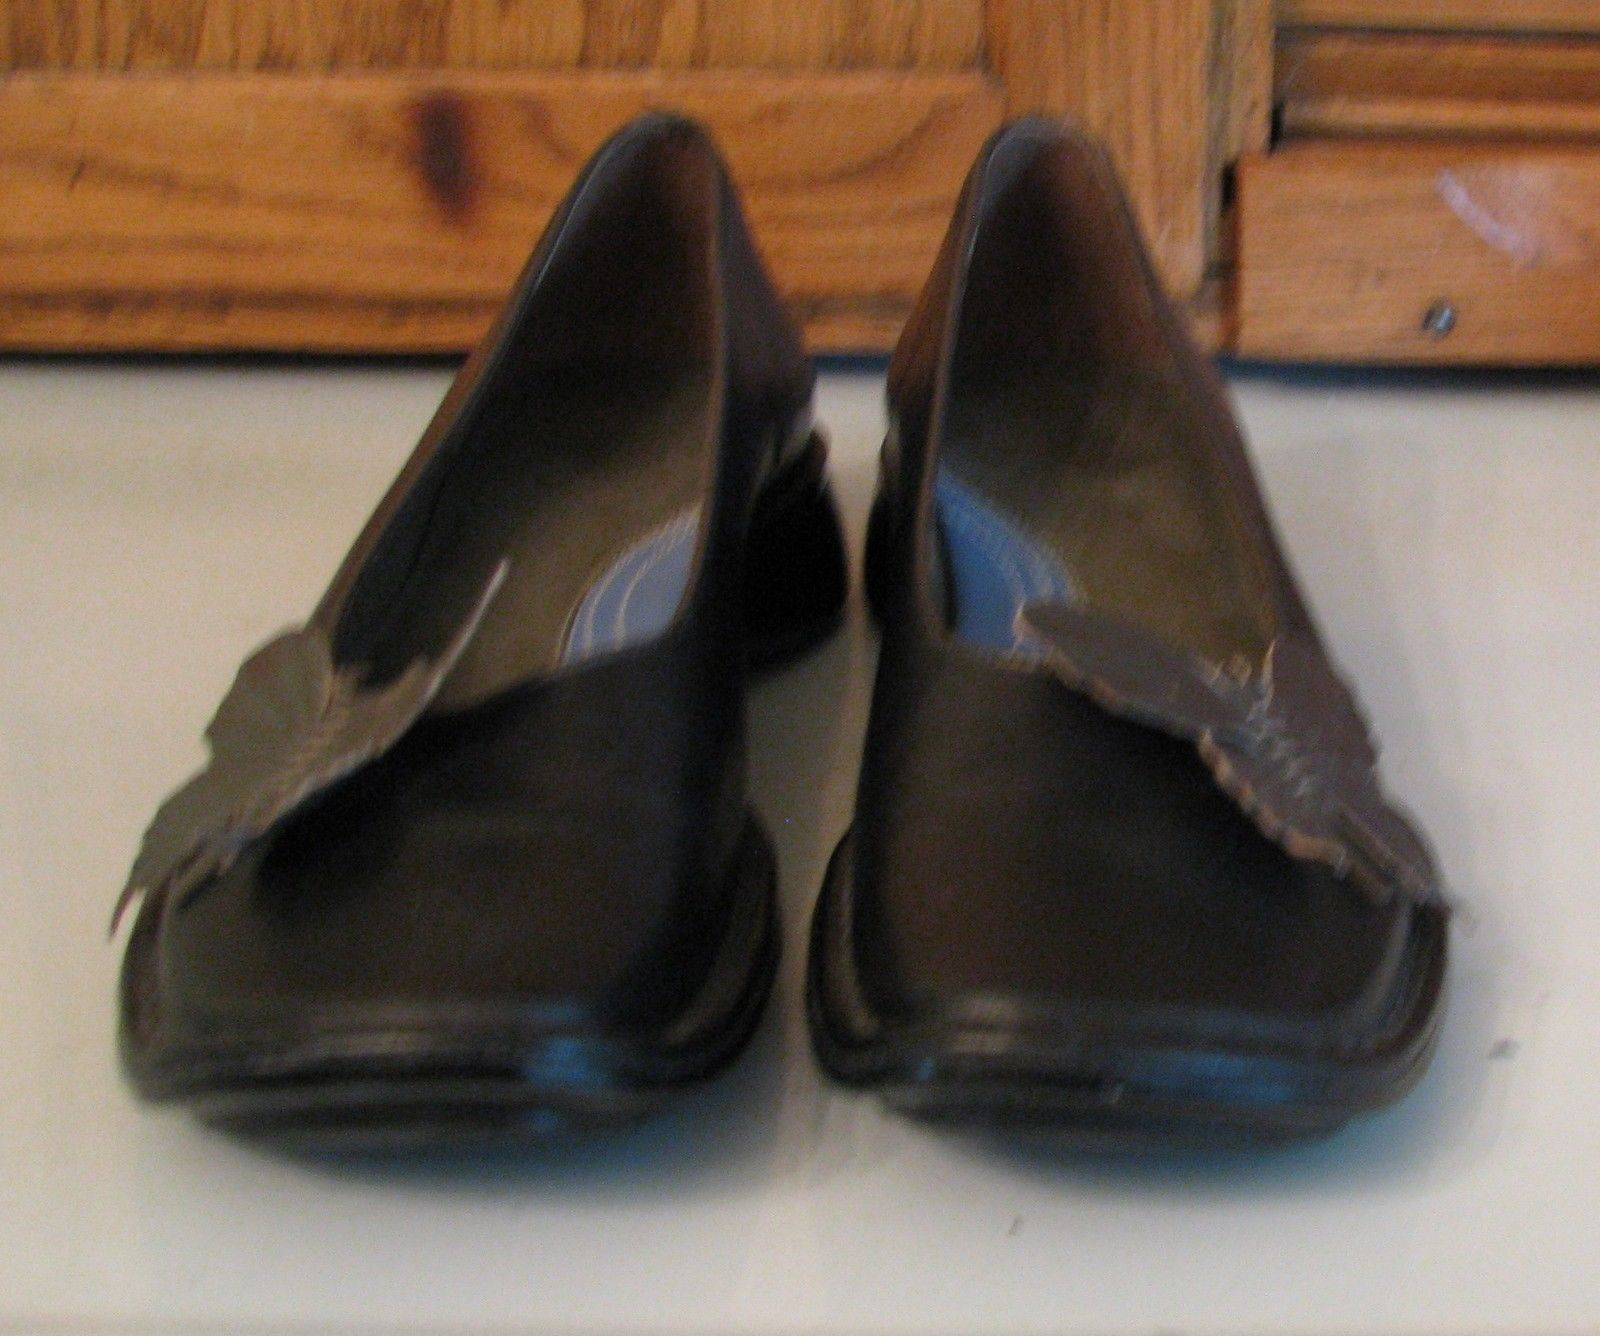 SHOES Clarks Indigo Black Leather  Cute Butterfly Accent Woman's 7 M Flats